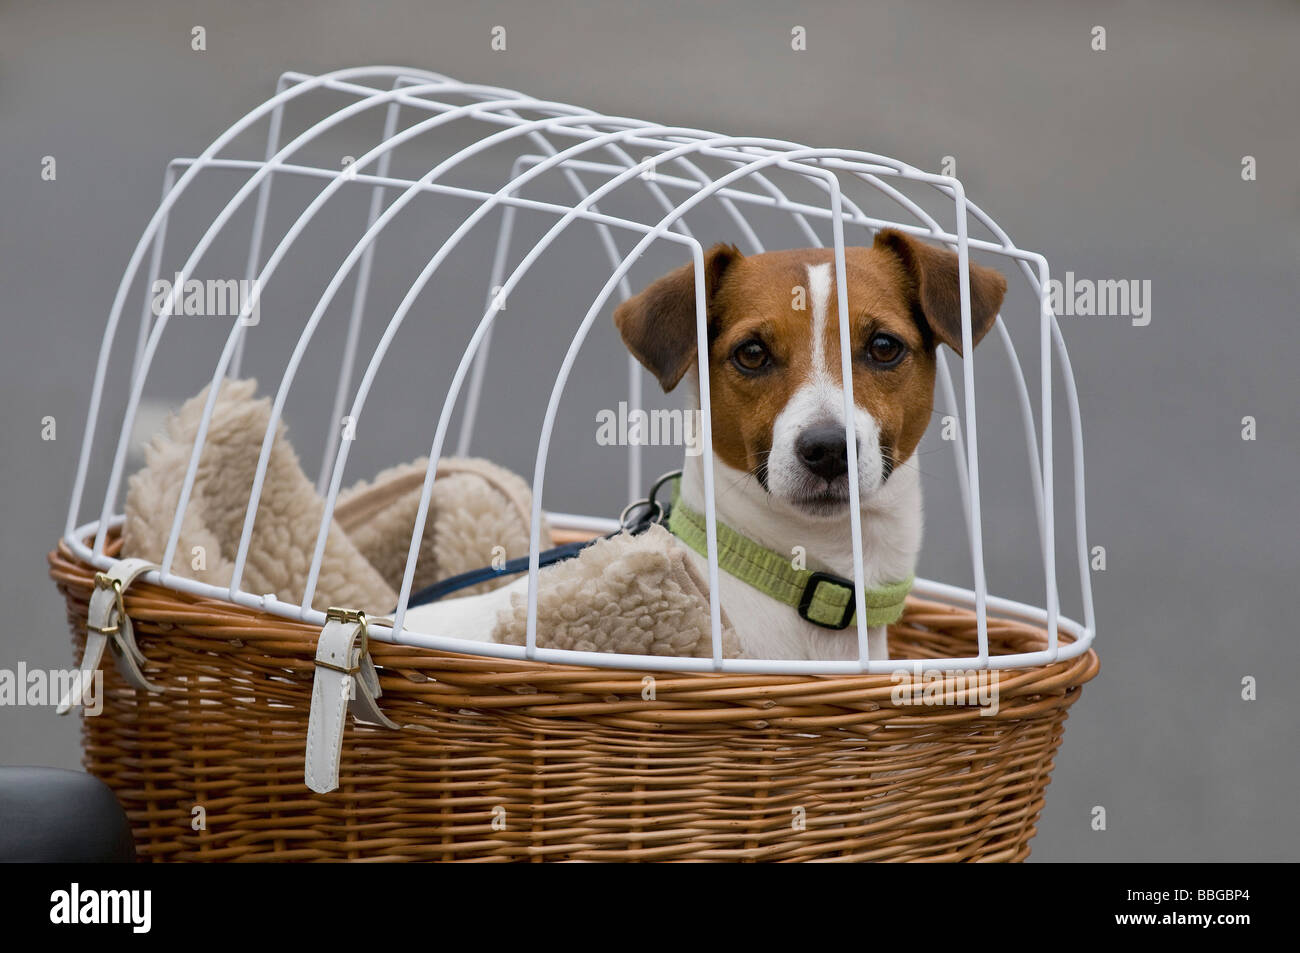 Jack Russell Terrier in bicycle basket with mesh lid looking at the viewer - Stock Image